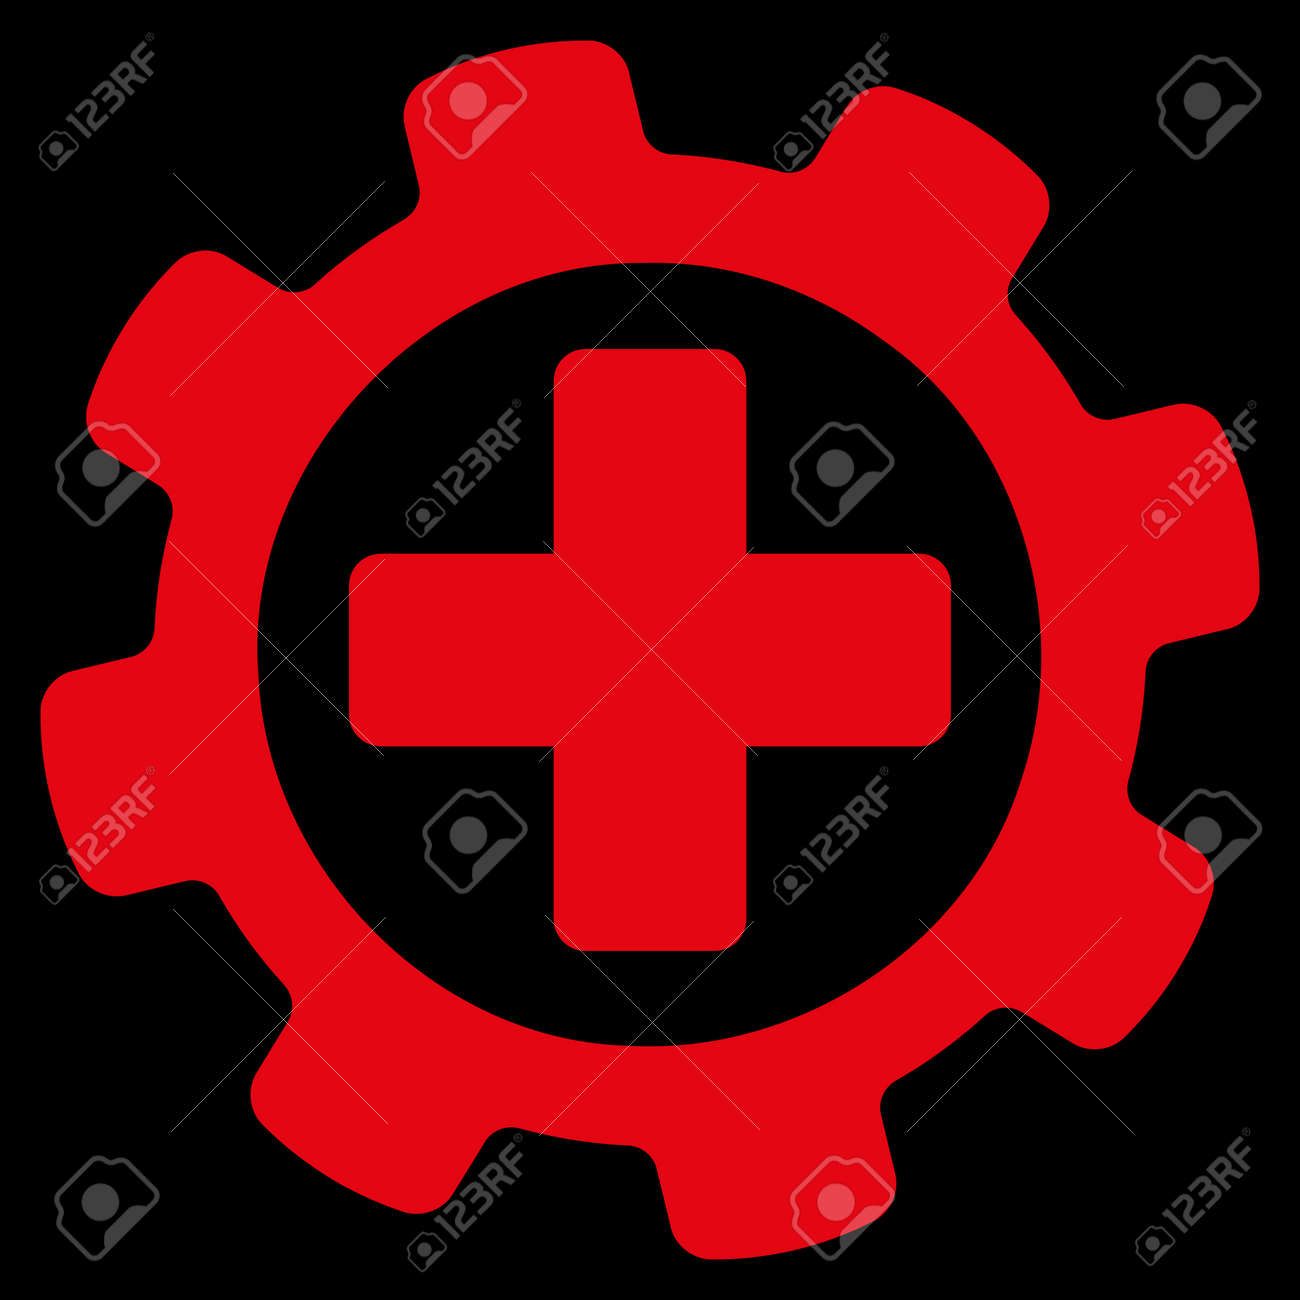 Medical Settings Icon This Flat Raster Symbol Uses Red Color Stock Photo Picture And Royalty Free Image Image 45679694